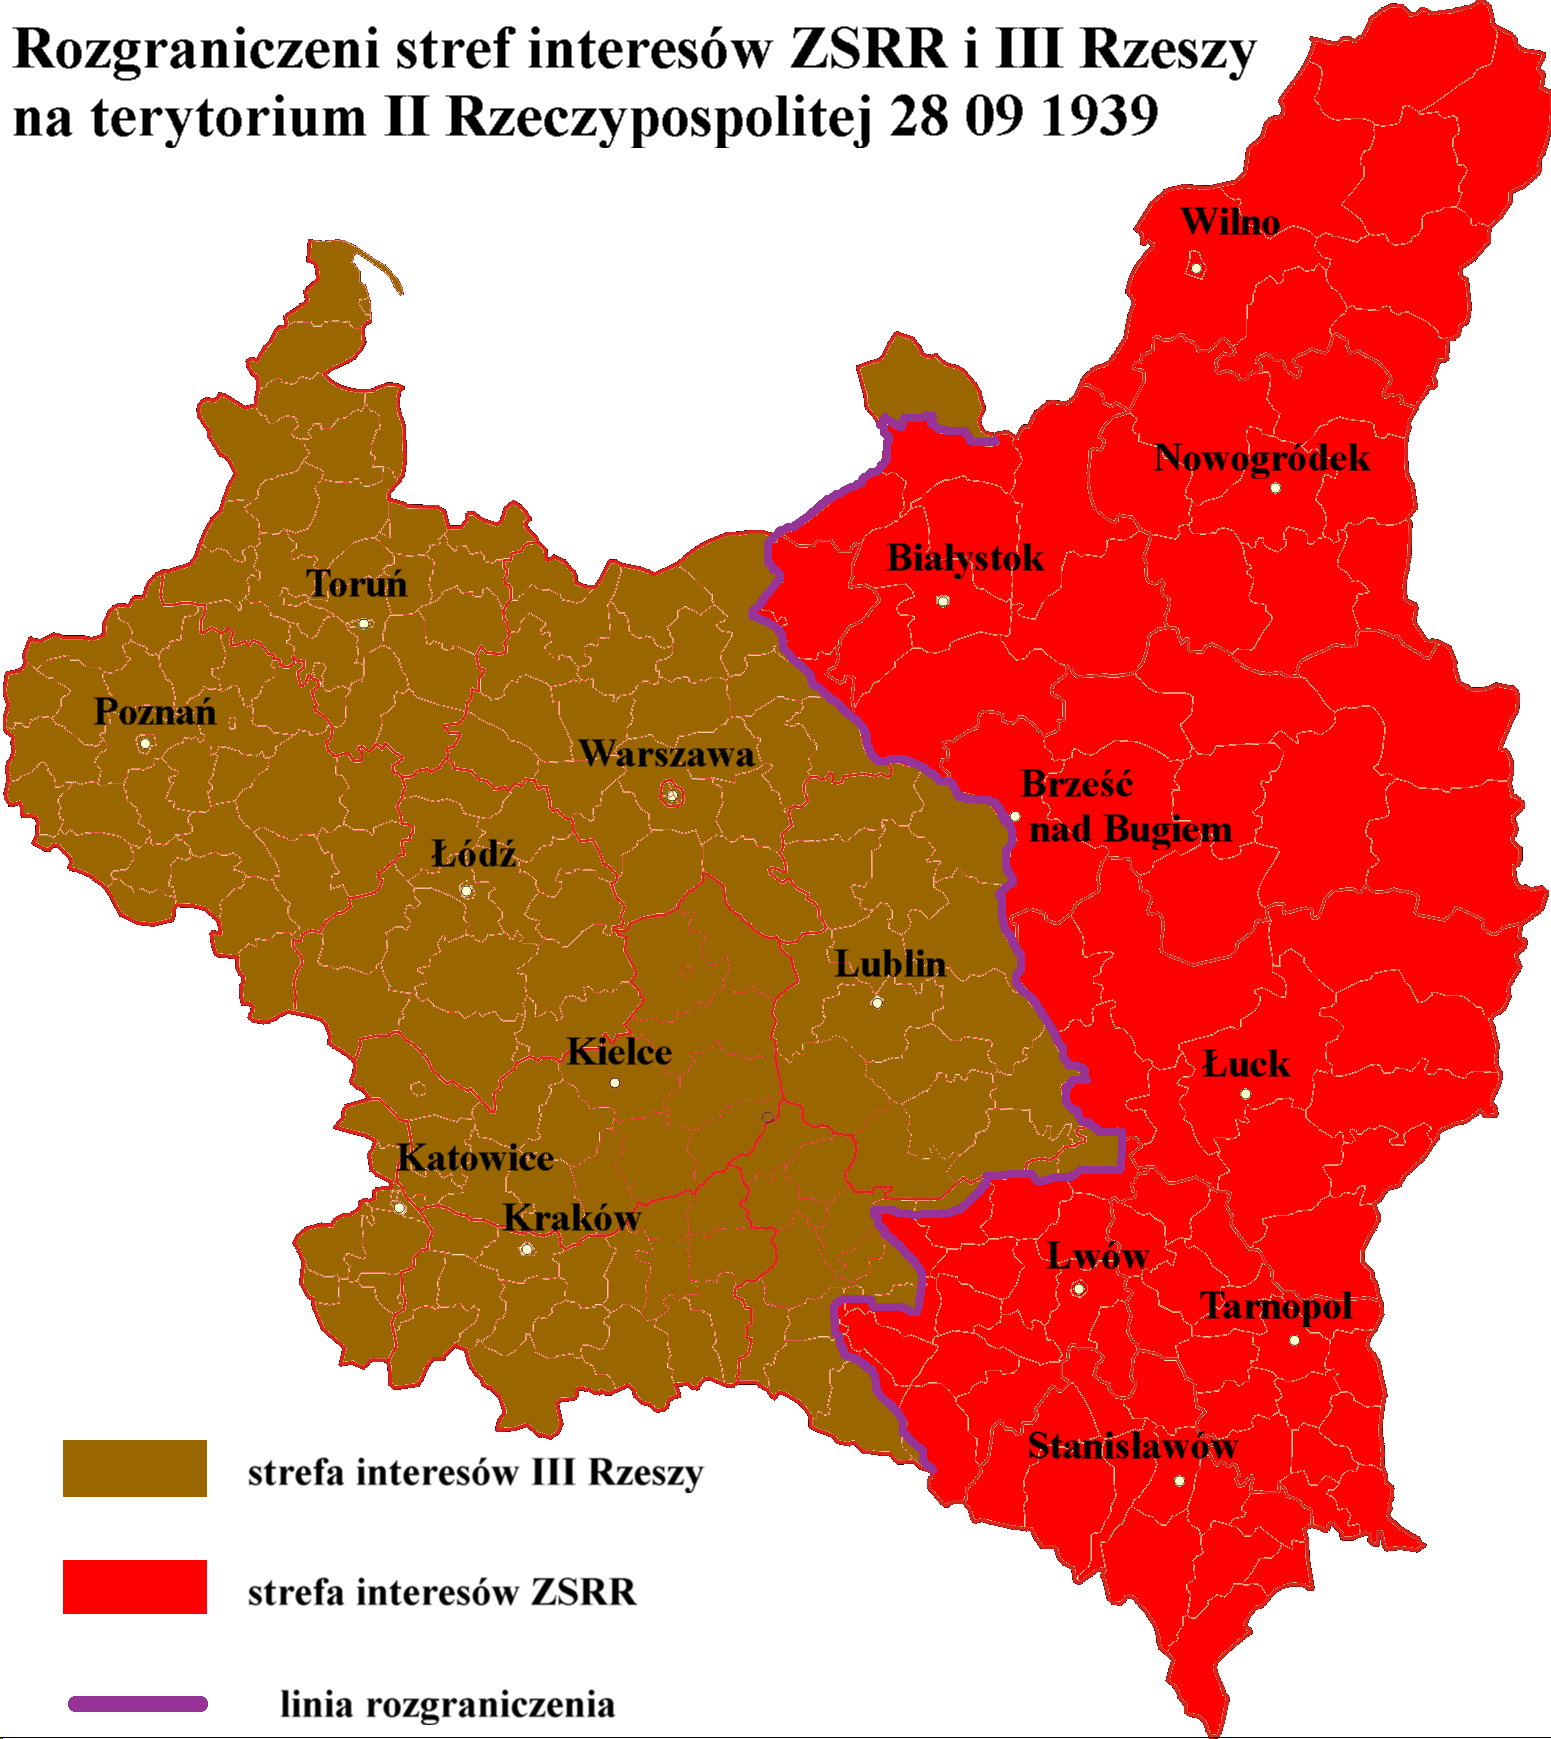 Soviet_and_German_sphere_of_influence_in_the_Second_Polish_Republic_according_to_Soviet-German_agreement_28_09_1939